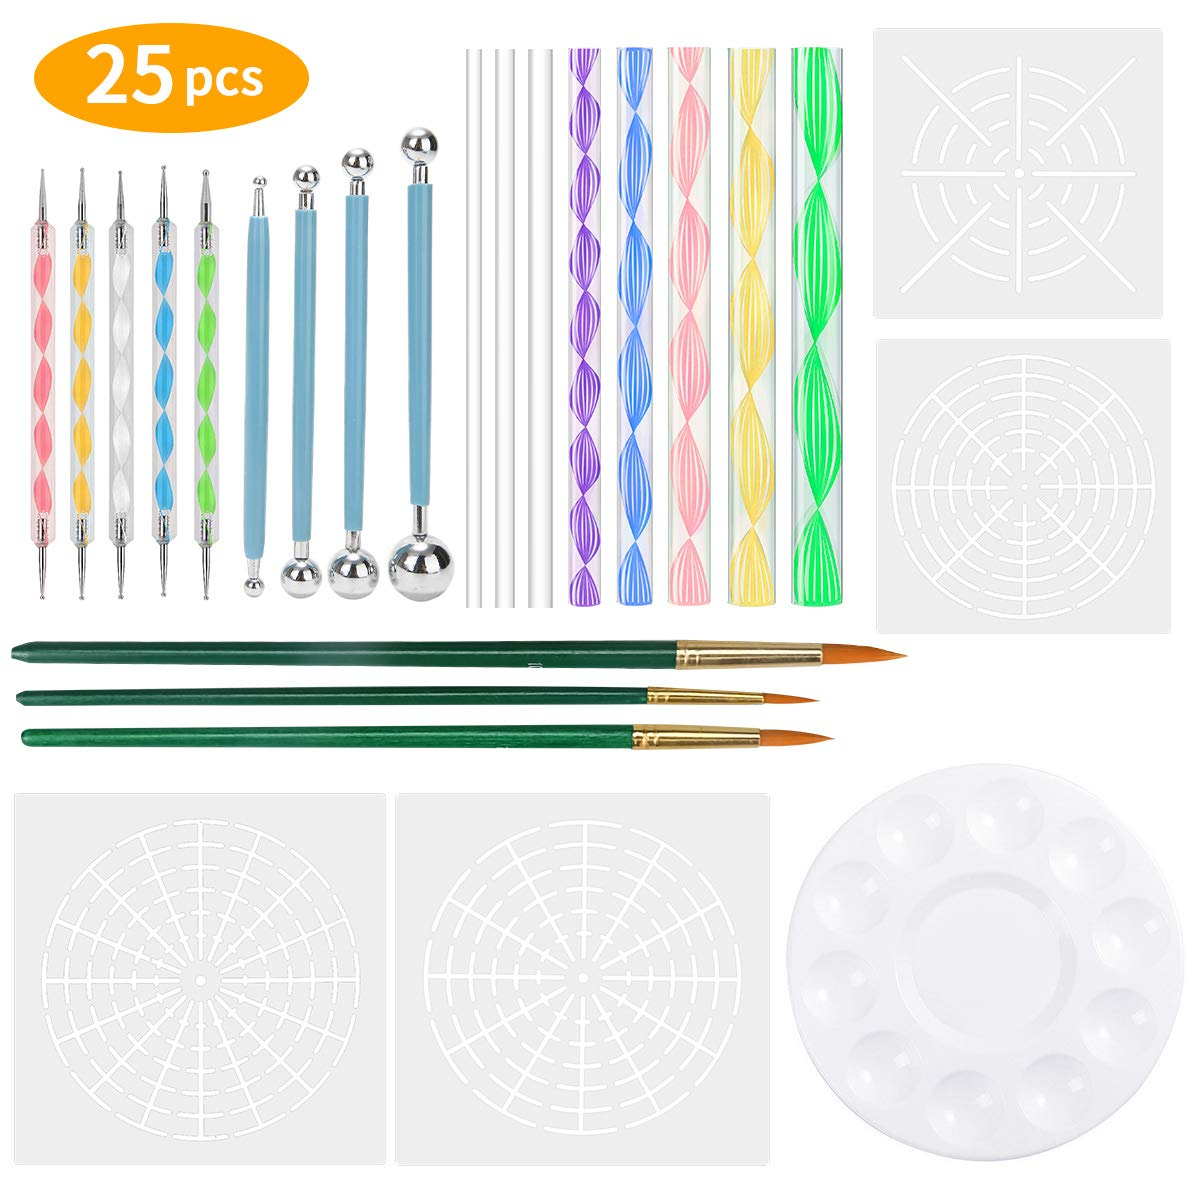 LINGSFIRE Mandala Dotting Tools Set Art Painting Pen Dotting Tools for Painting Rocks Coloring Drawing with Mandala Stencil, Dotting Pens, Paint Tray, Brush and Modeling Tools for Kids' Crafts (25PCS)